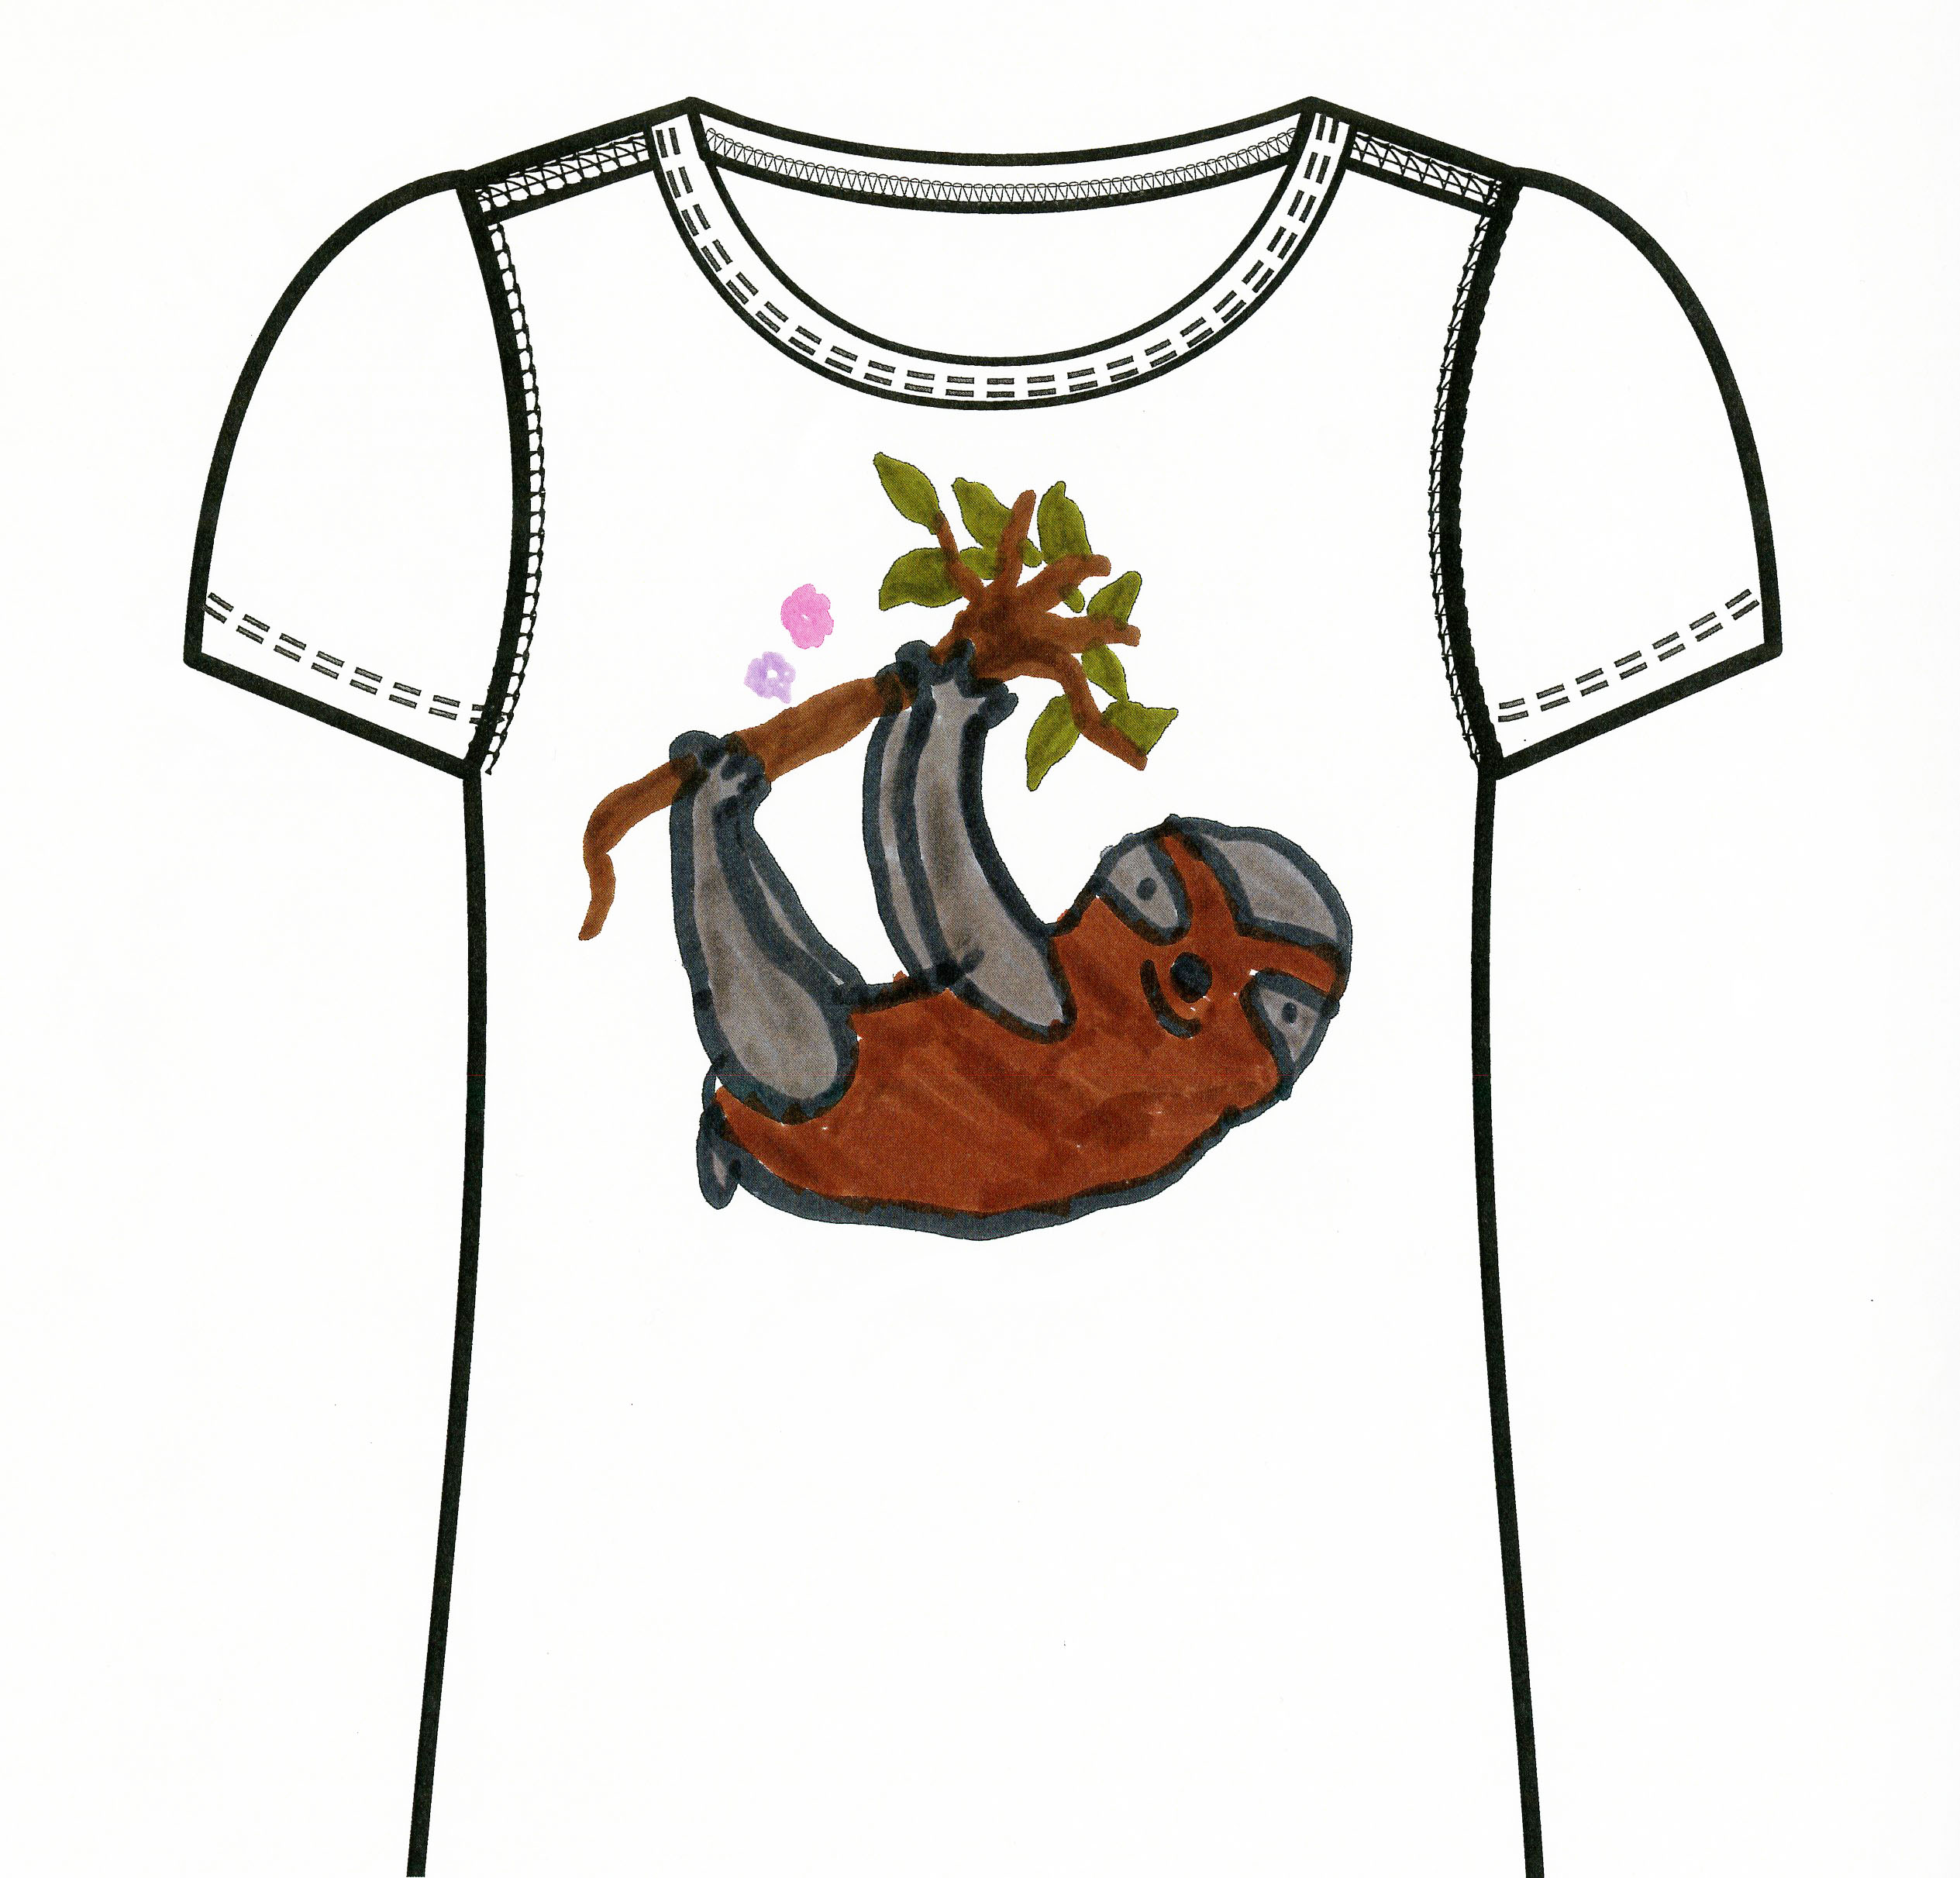 An illustration of a white t-shirt with a brown and gray sloth hanging from a tree branch with green leaves